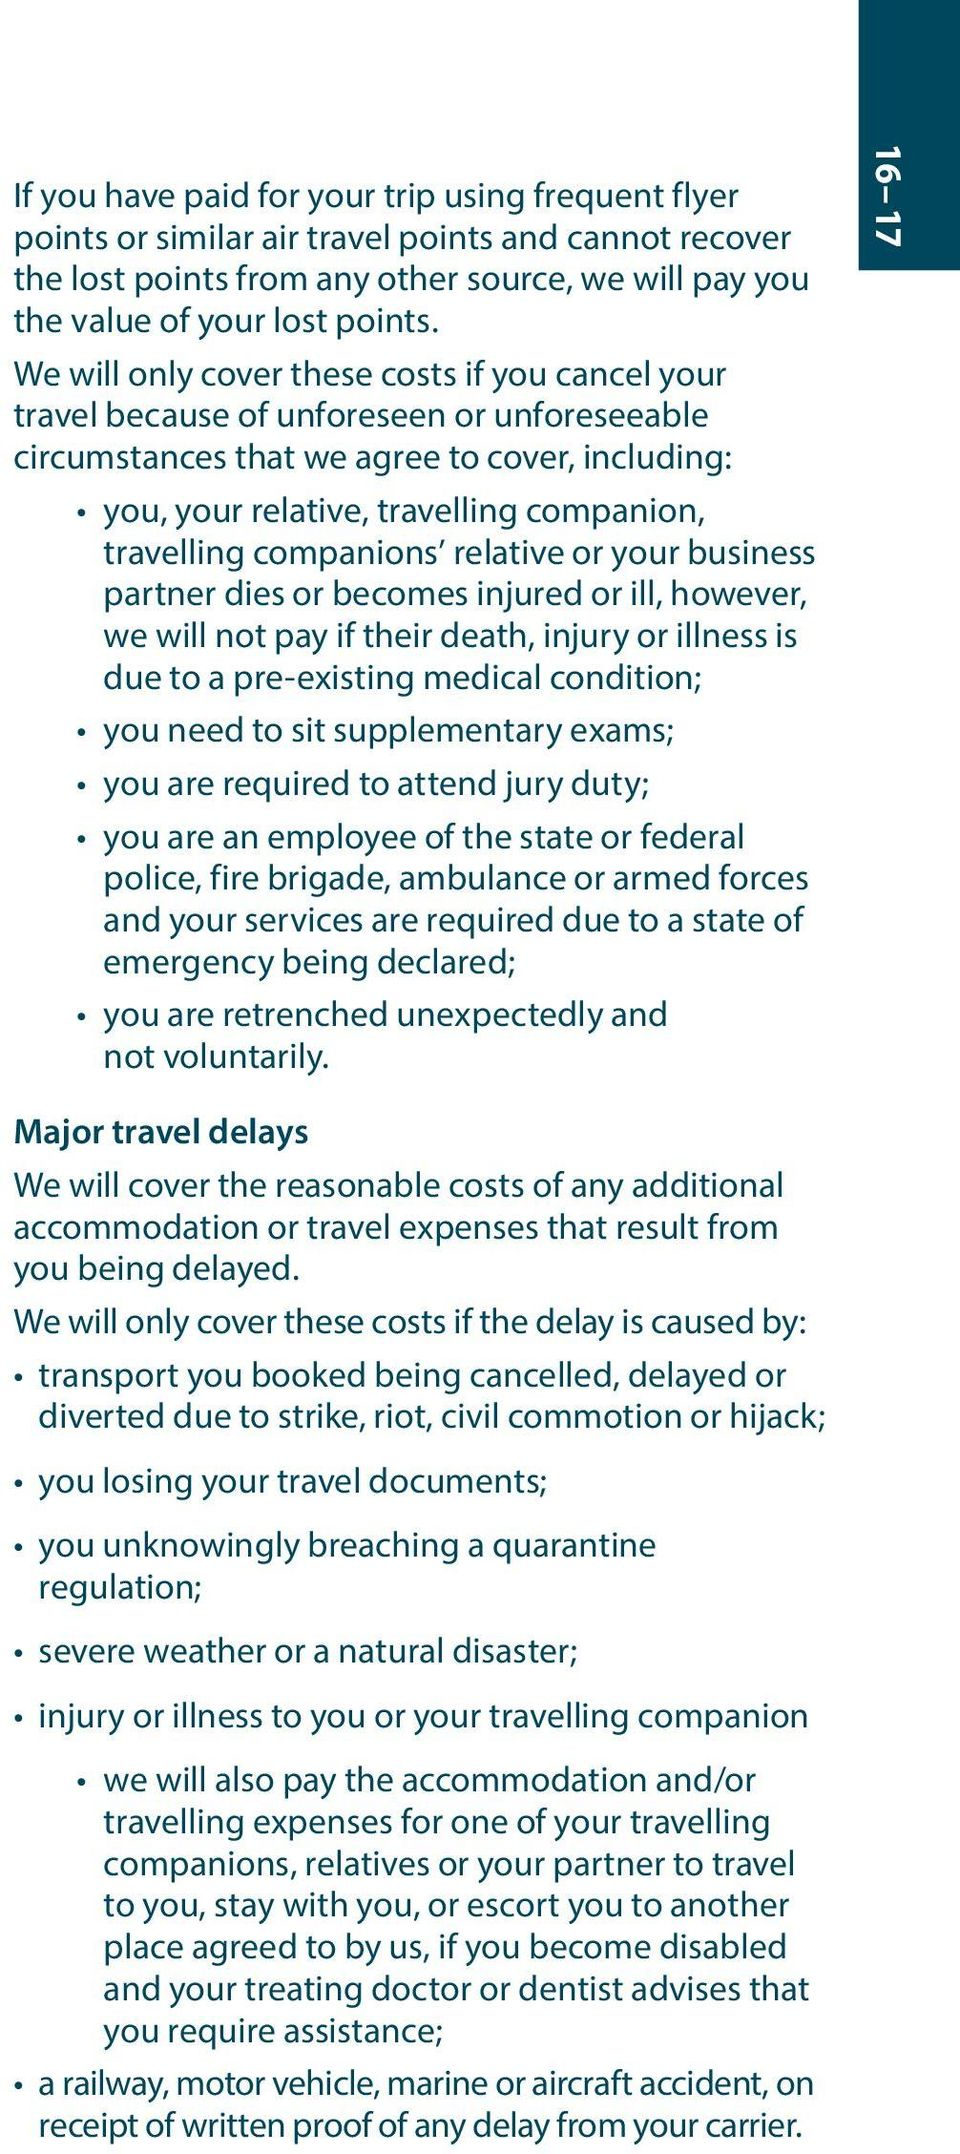 companions relative or your business partner dies or becomes injured or ill, however, we will not pay if their death, injury or illness is due to a pre-existing medical condition; you need to sit